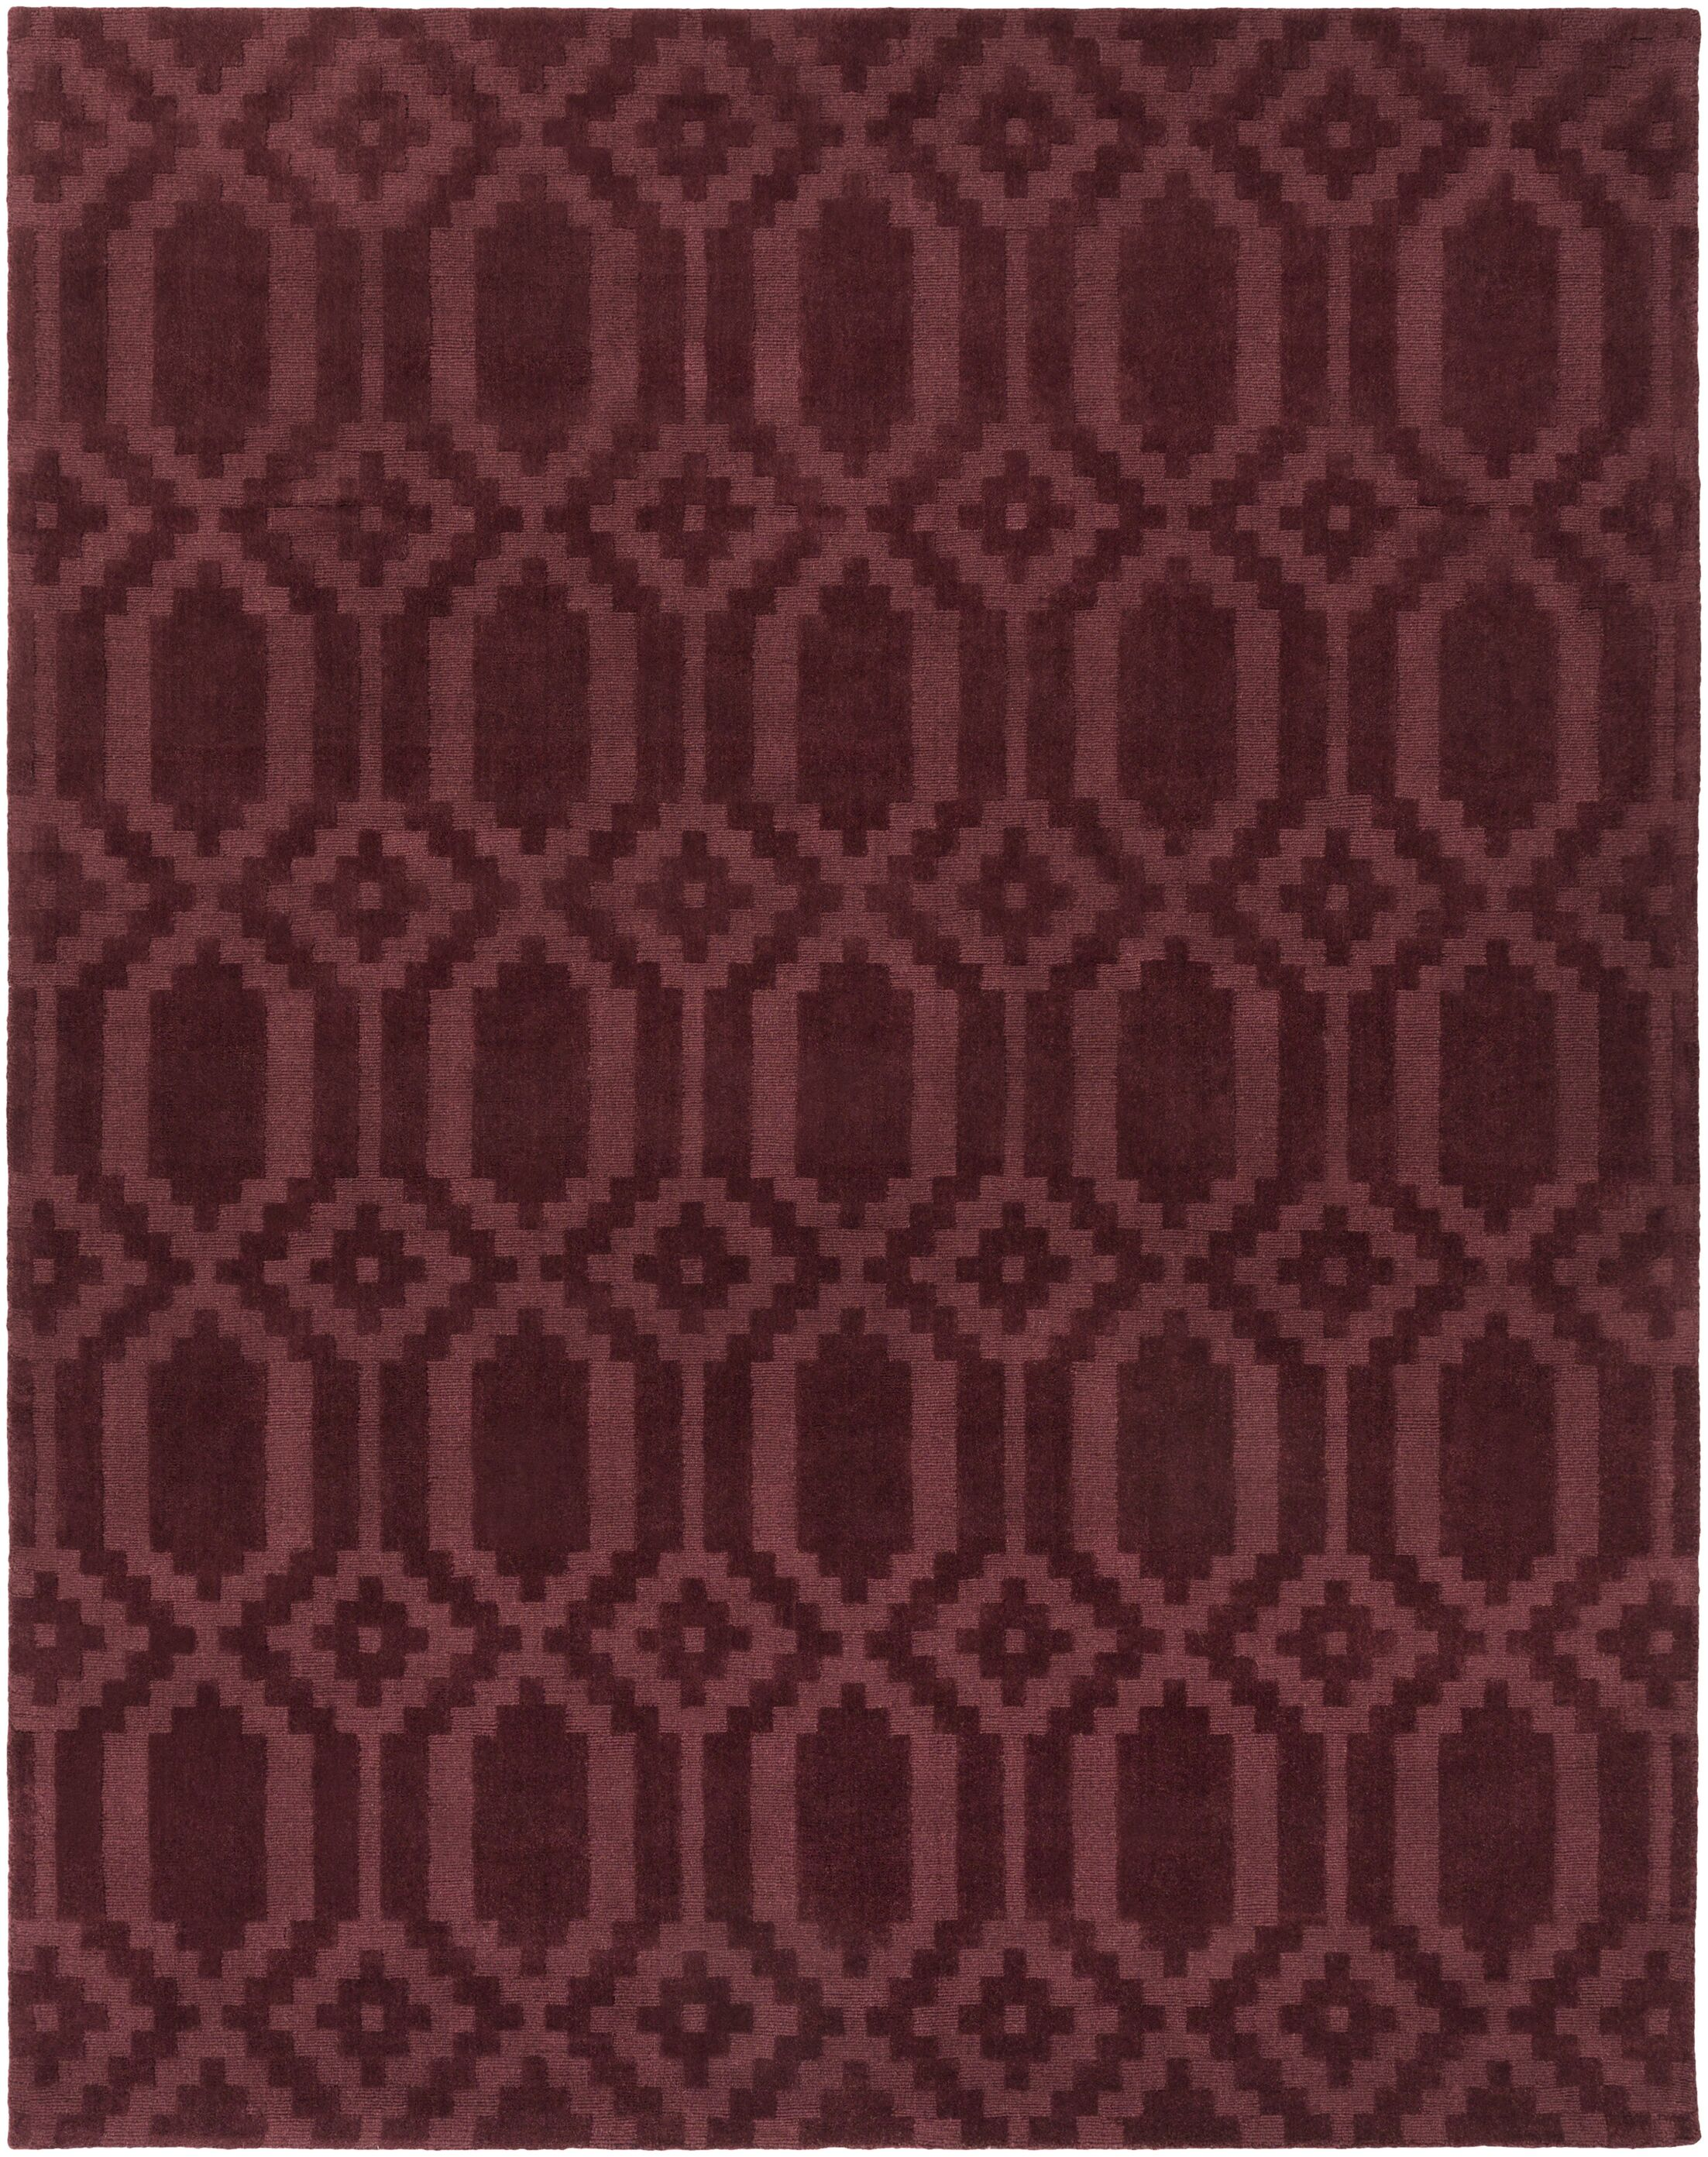 Brack Hand-Loomed Burgundy Area Rug Rug Size: Rectangle 8' x 10'